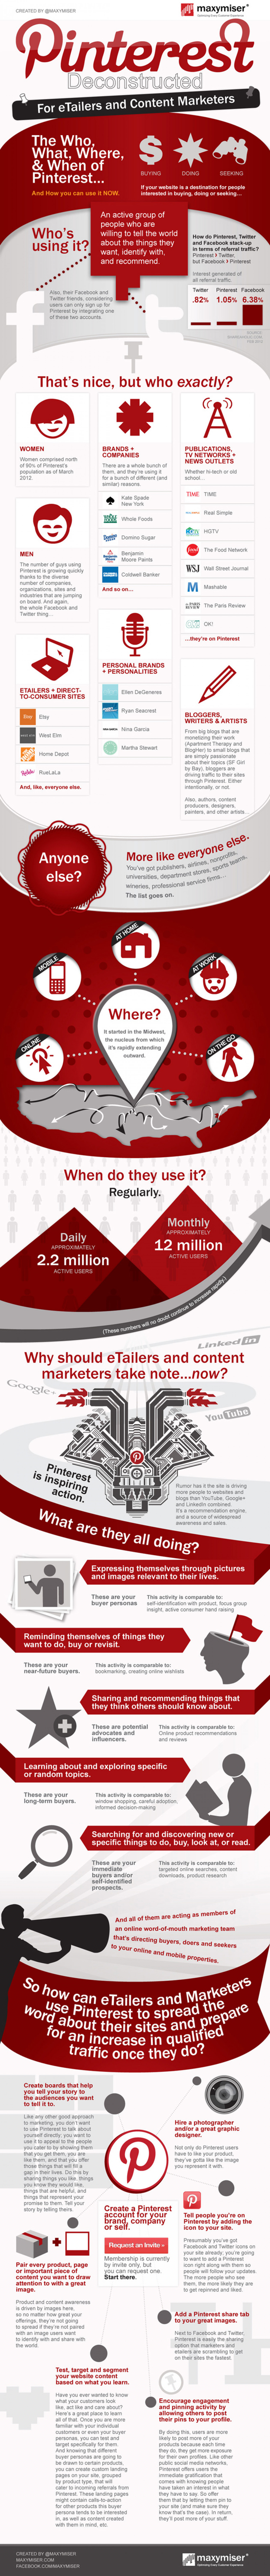 Build Your Brand on Pinterest Infographic